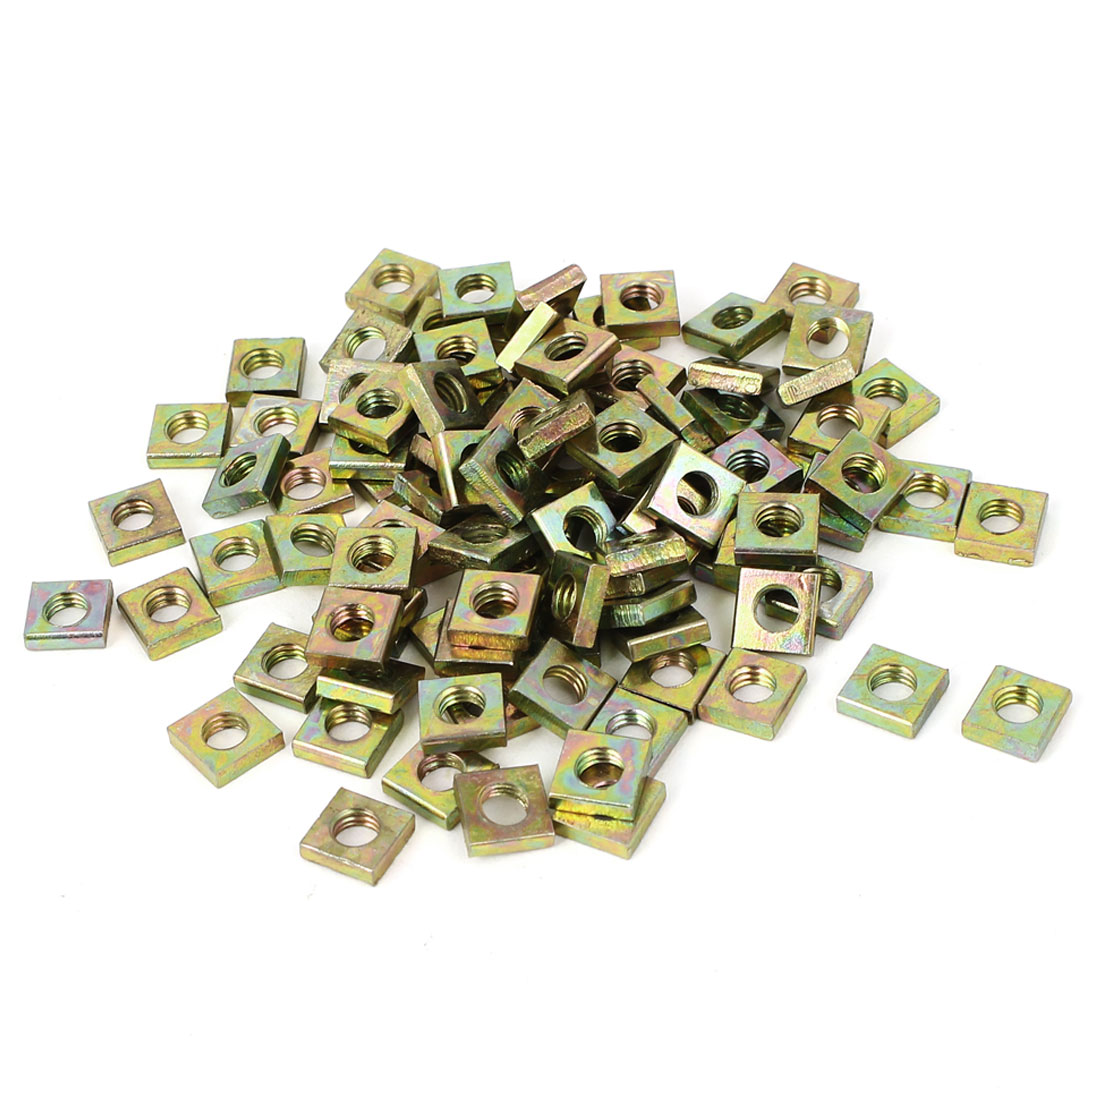 M6x10x3mm Yellow Zinc Plated Square Machine Screw Nuts Fastener 100pcs